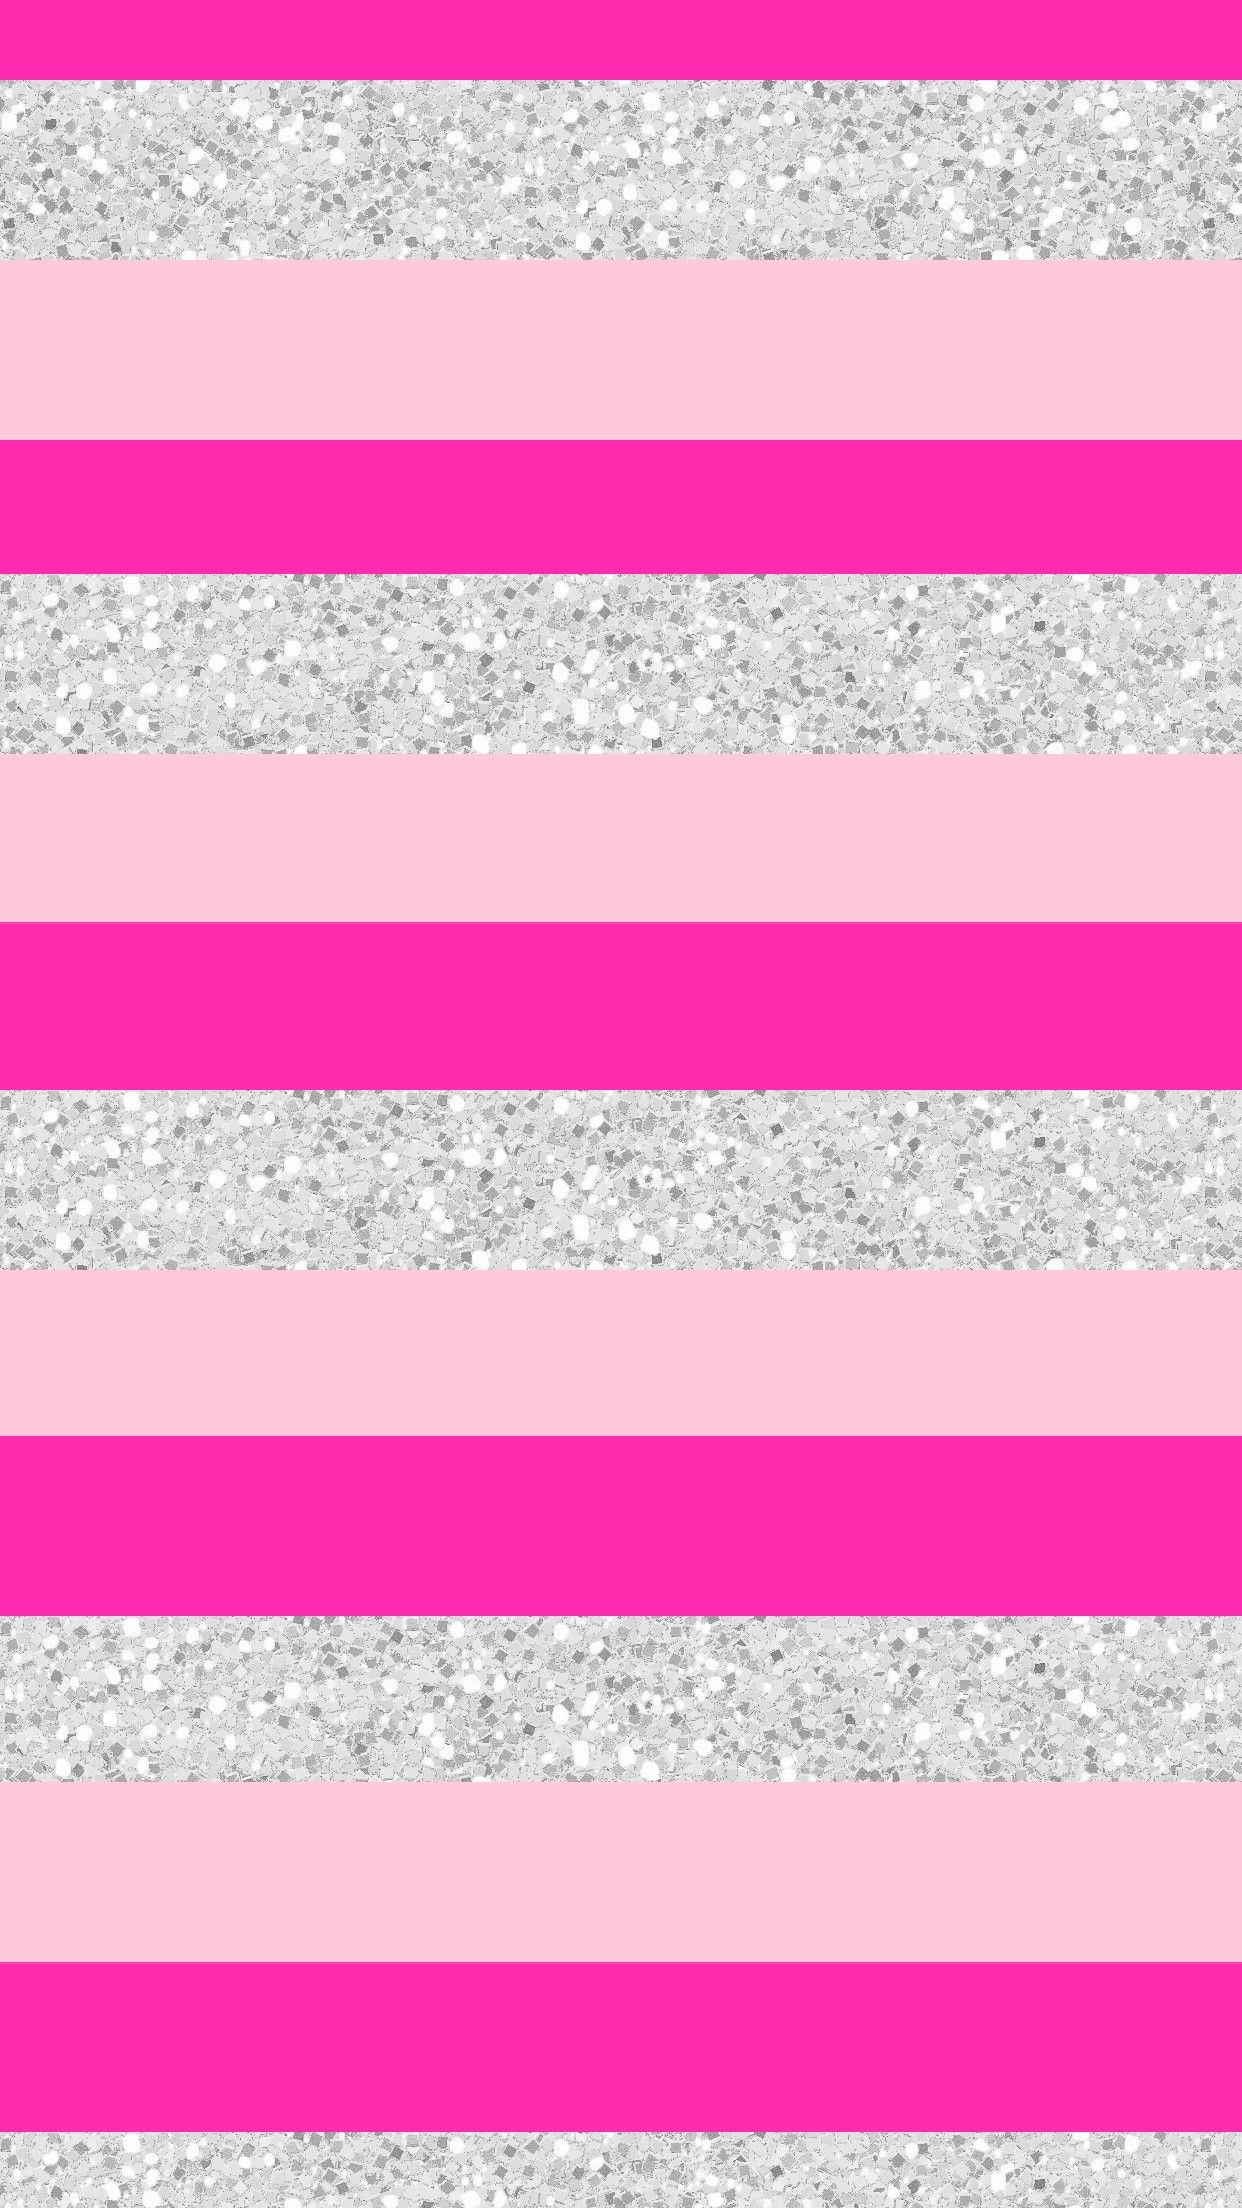 Pink striped wallpaper hd - Wallpaper Background Iphone Android Hd Pink Silver Glitter